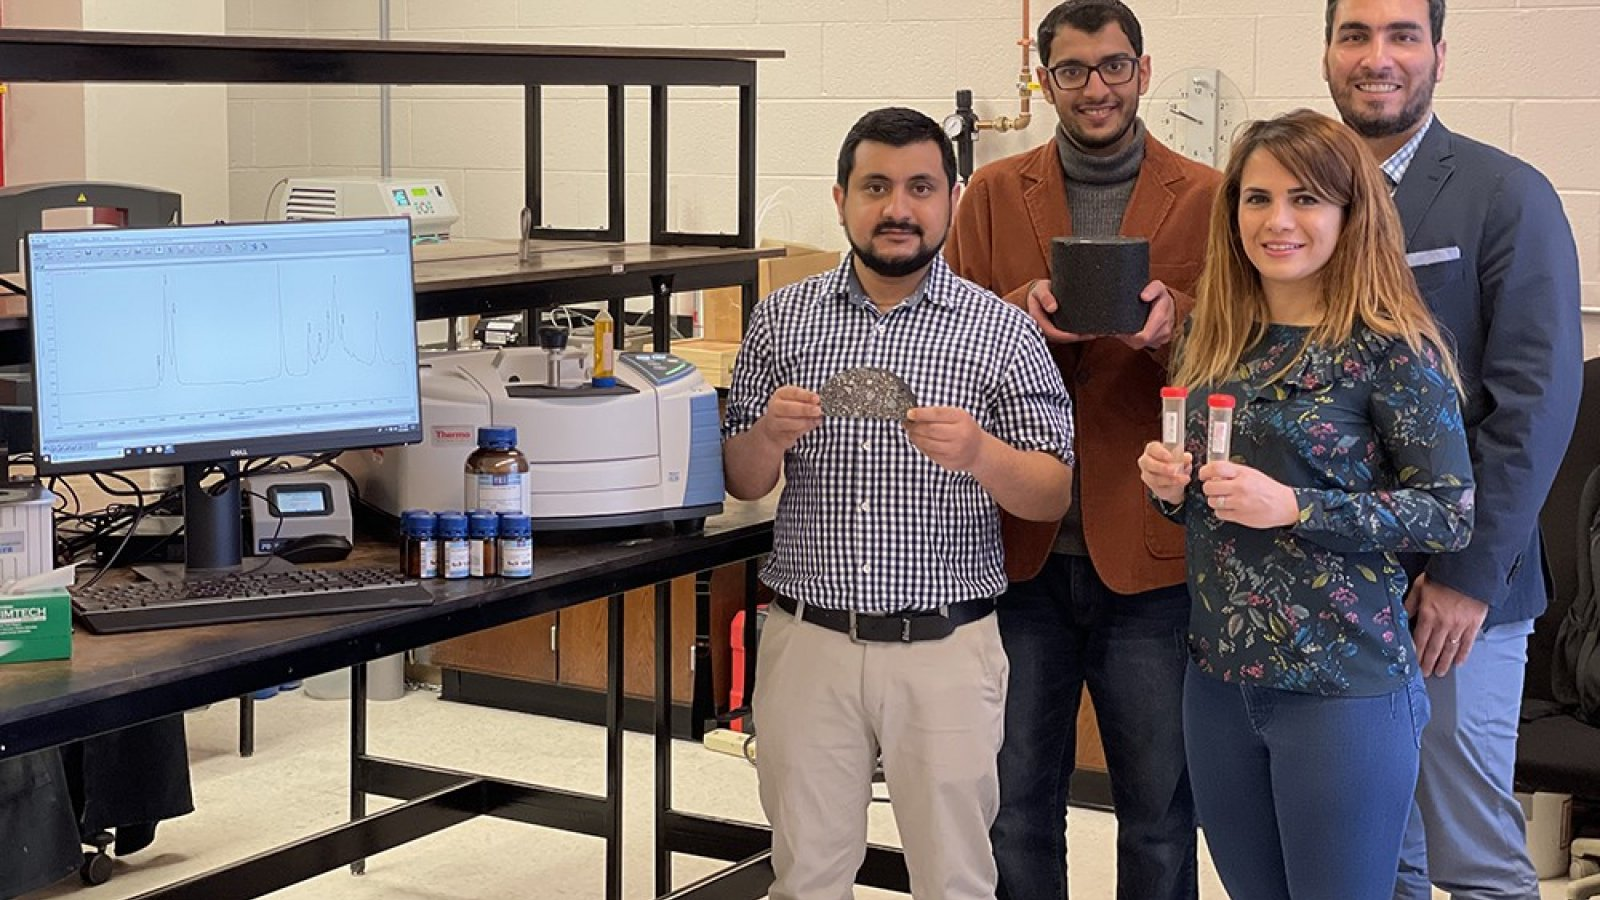 The team of Husker researchers and engineers working on the asphalt project includes (from left) Nitish Bastola, Khalid Al Washahi, Mahdieh Khedmati and Hamzeh Haghshenas Fatmehsari.